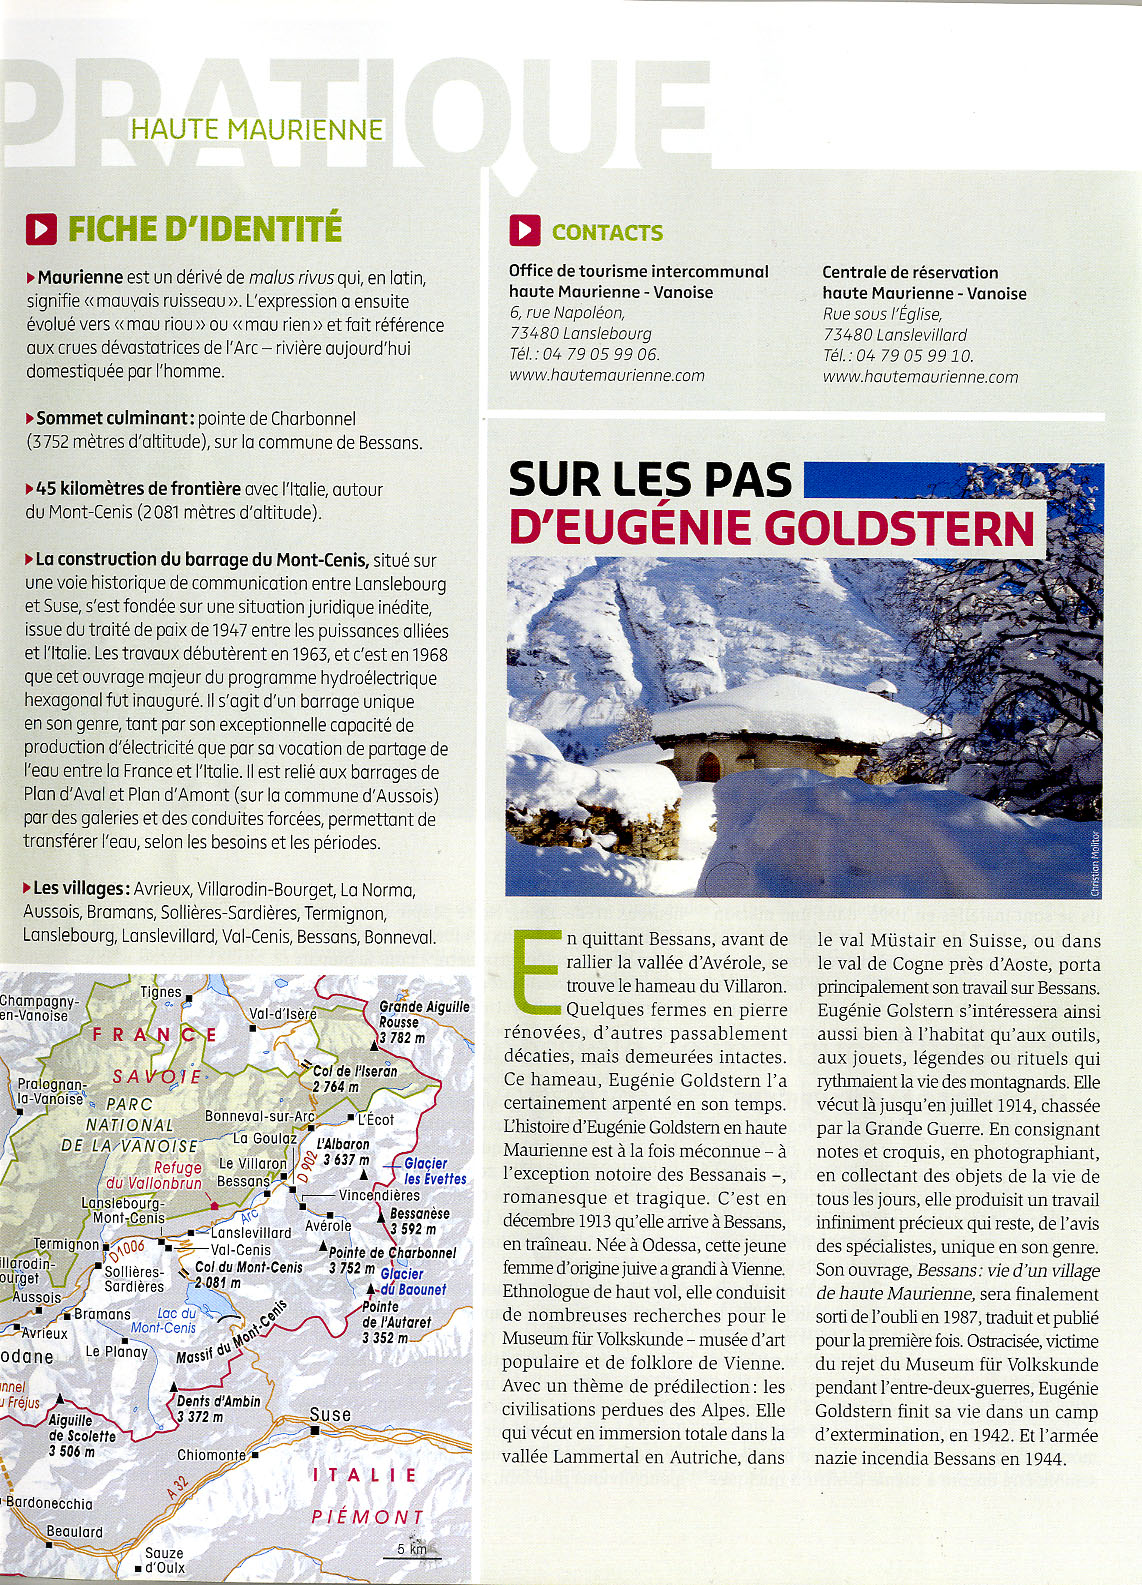 ARTICLE ALPES MAGASINE 2